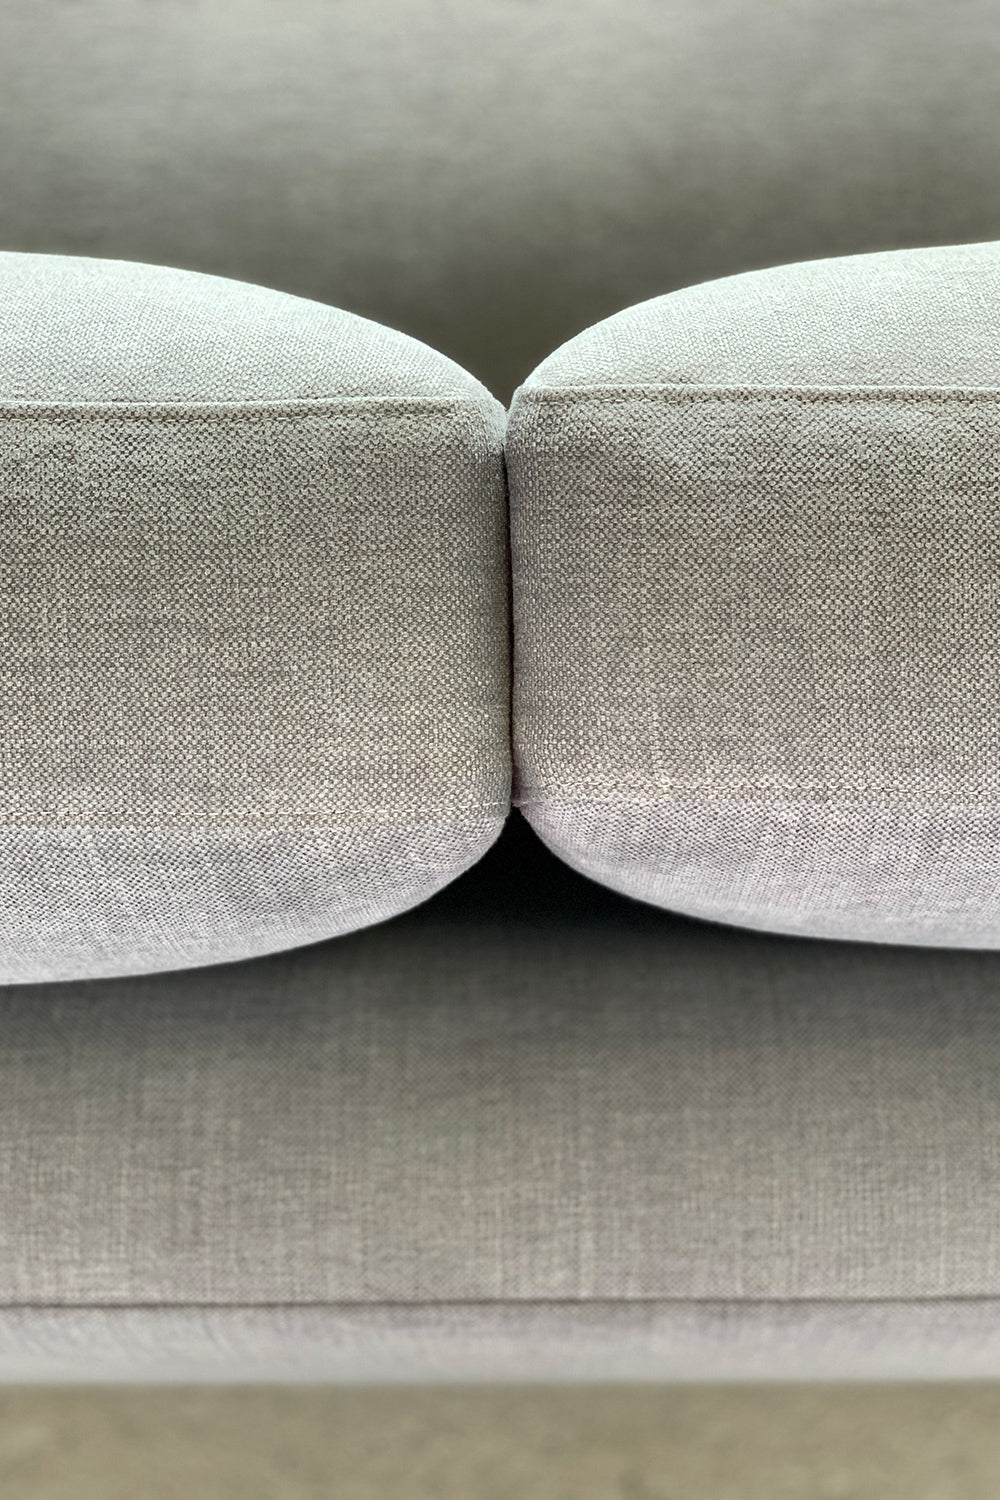 ffabb coasty extra sectional RHF close up of cushions